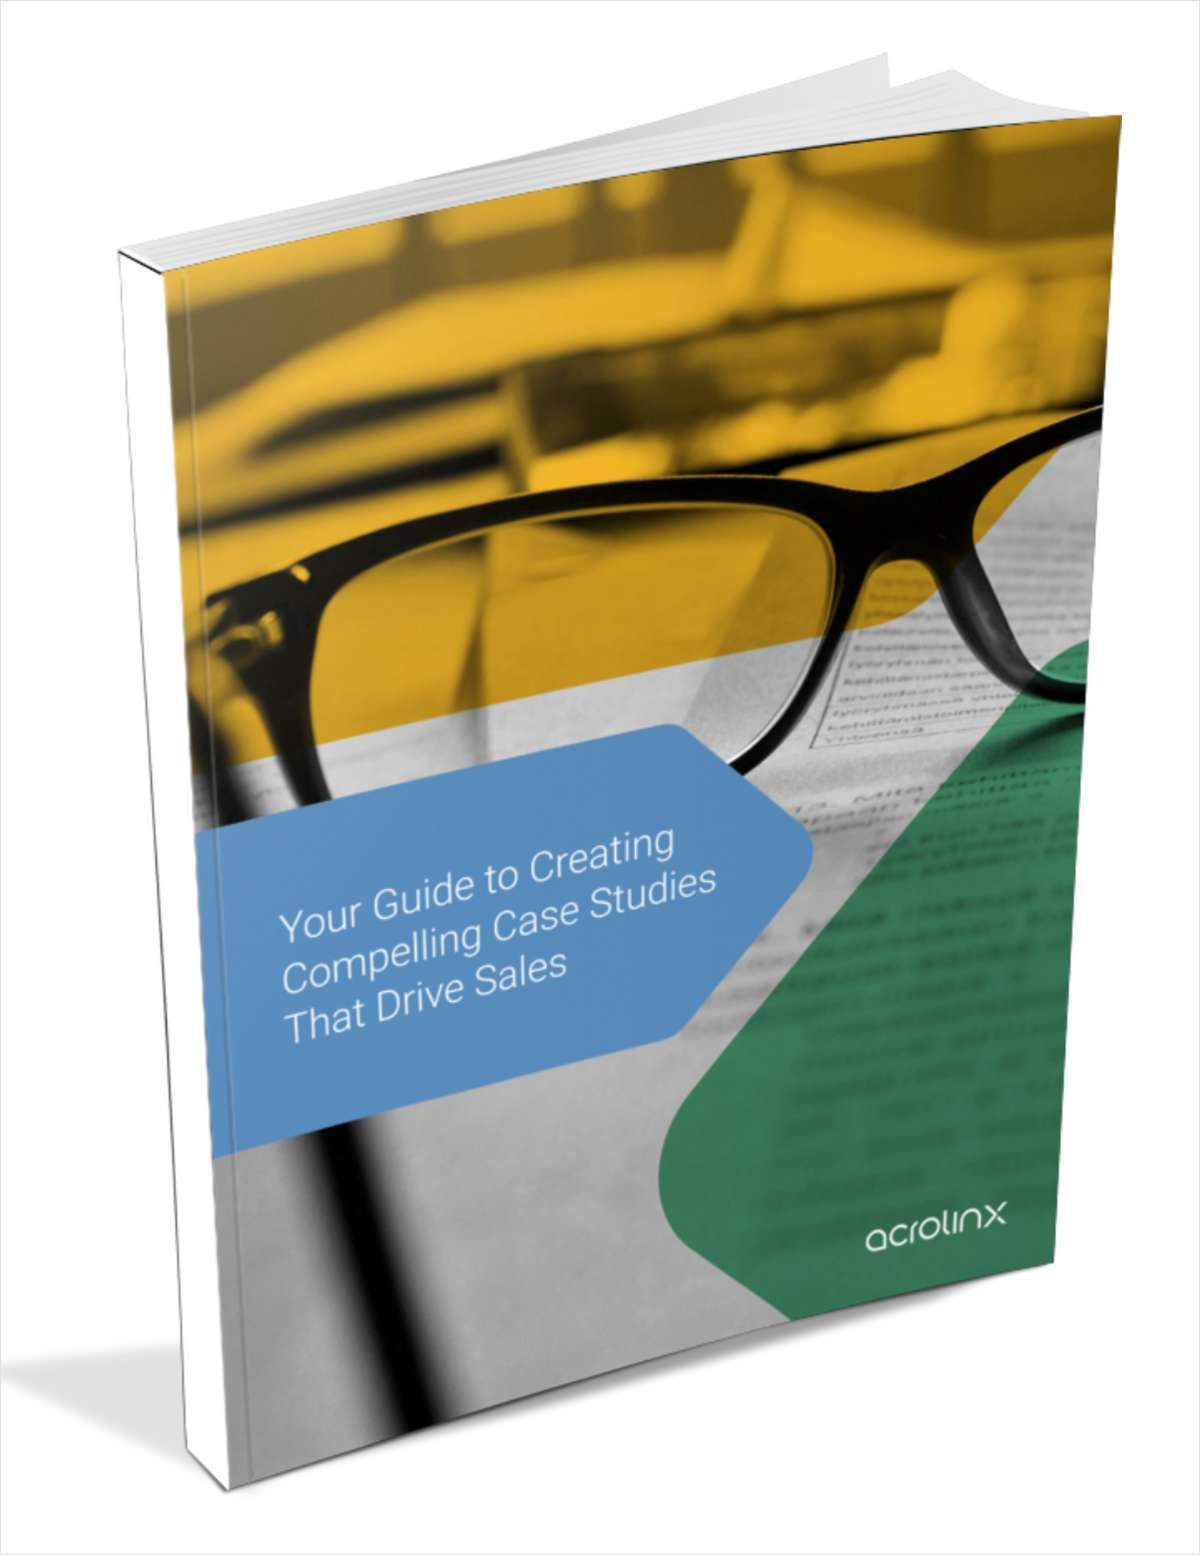 How to Create Compelling Case Studies That Drive Sales